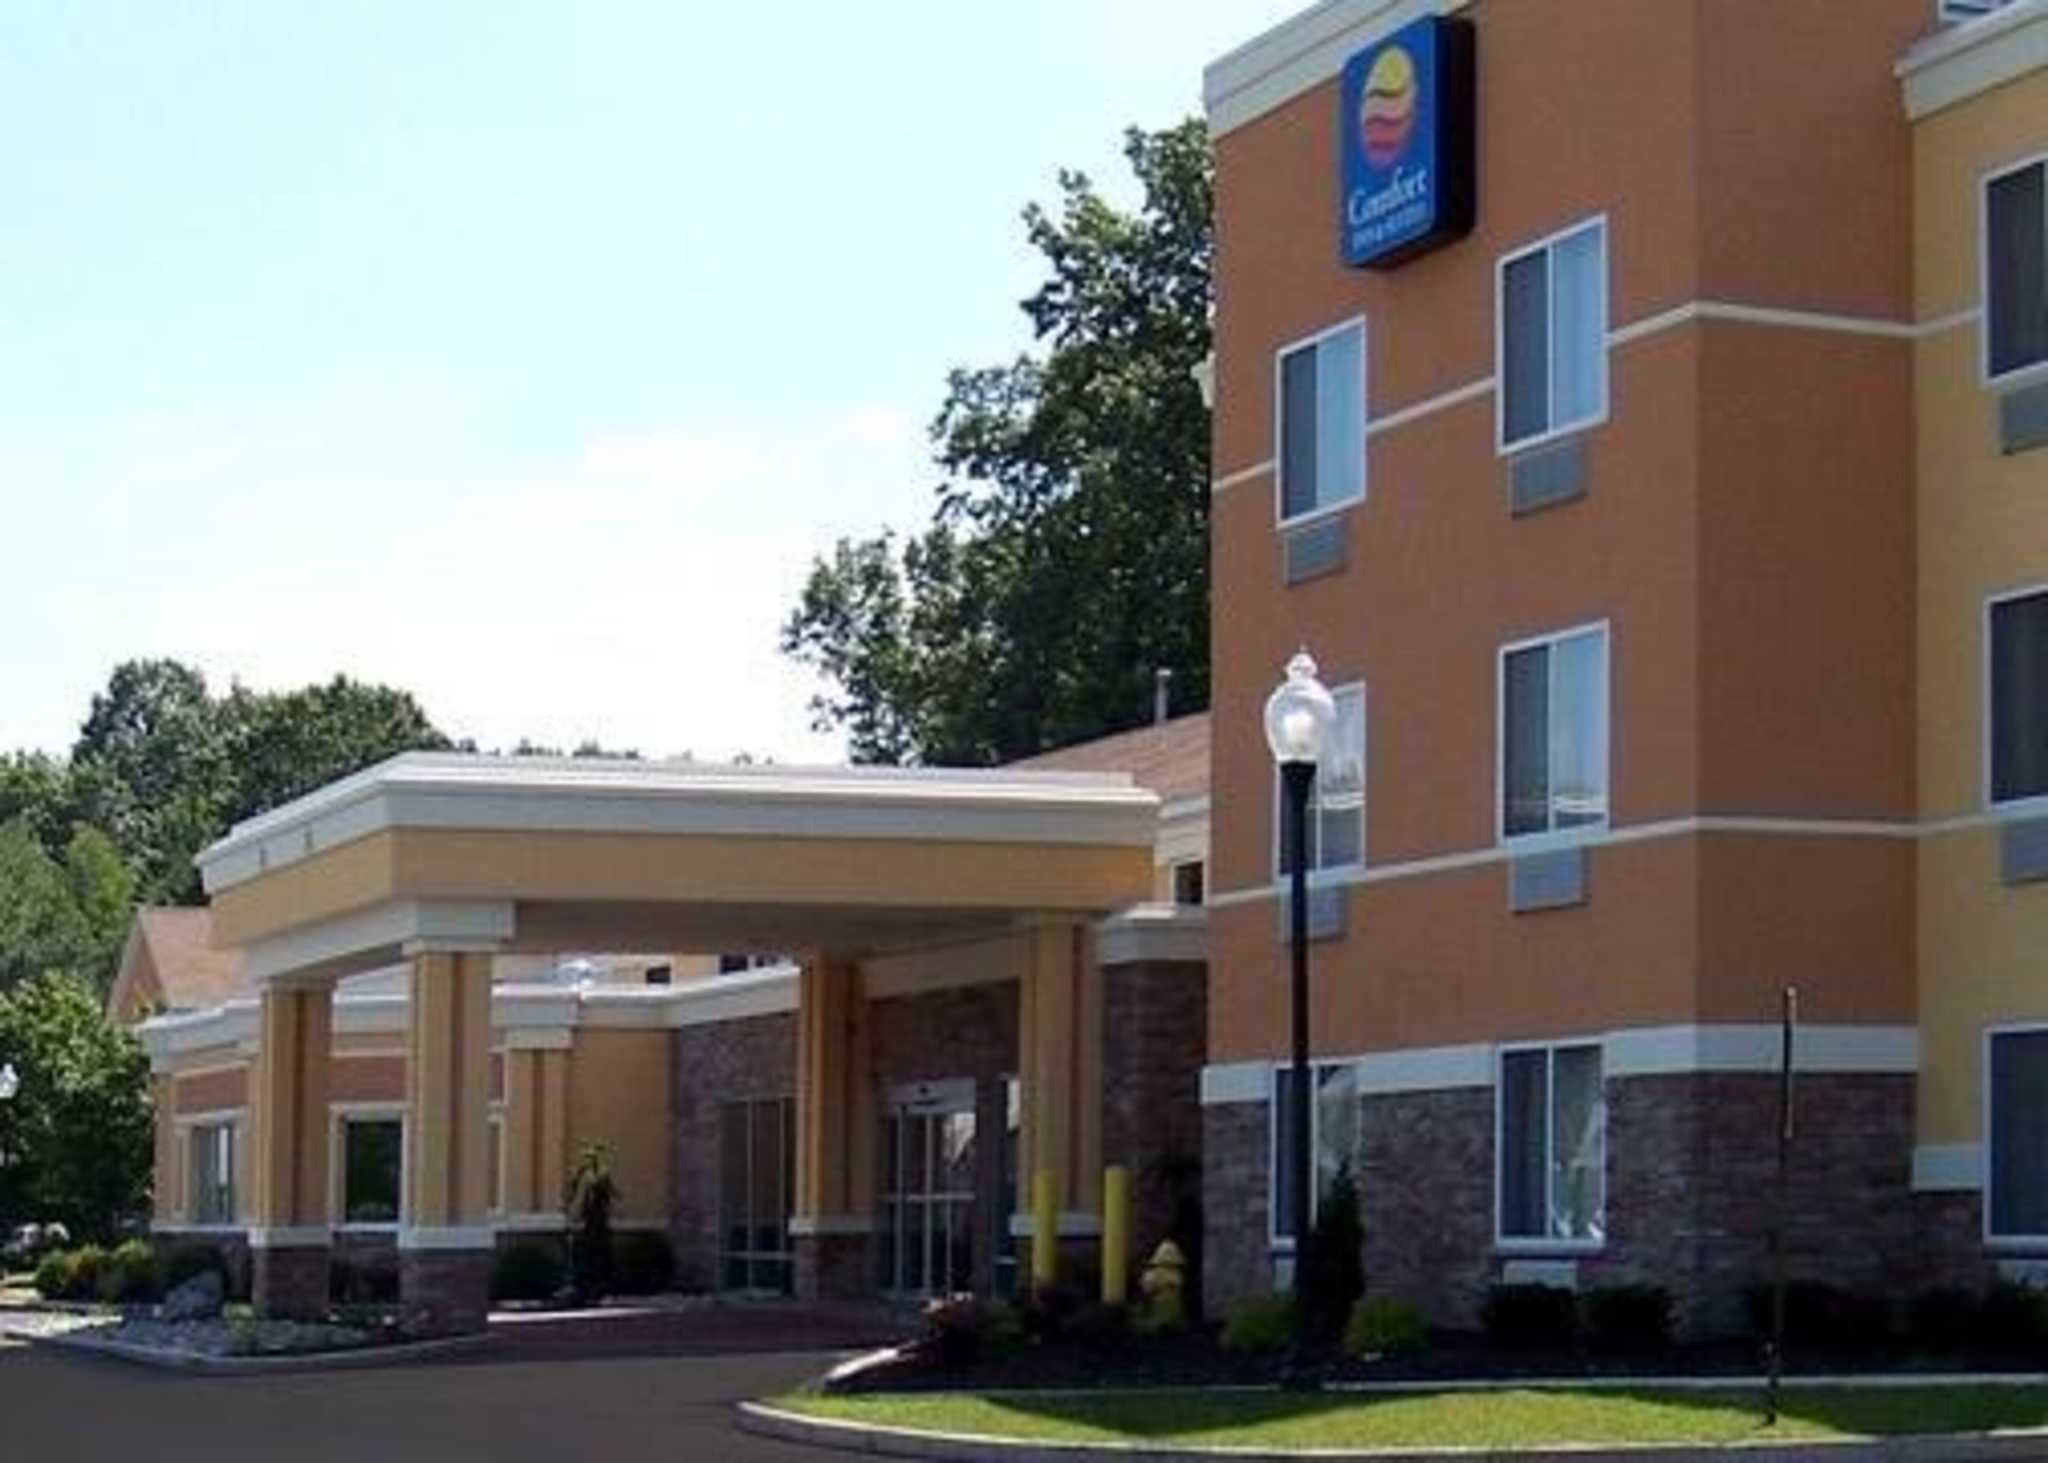 Comfort inn suites in saratoga springs ny 12866 for Hotels saratoga springs new york